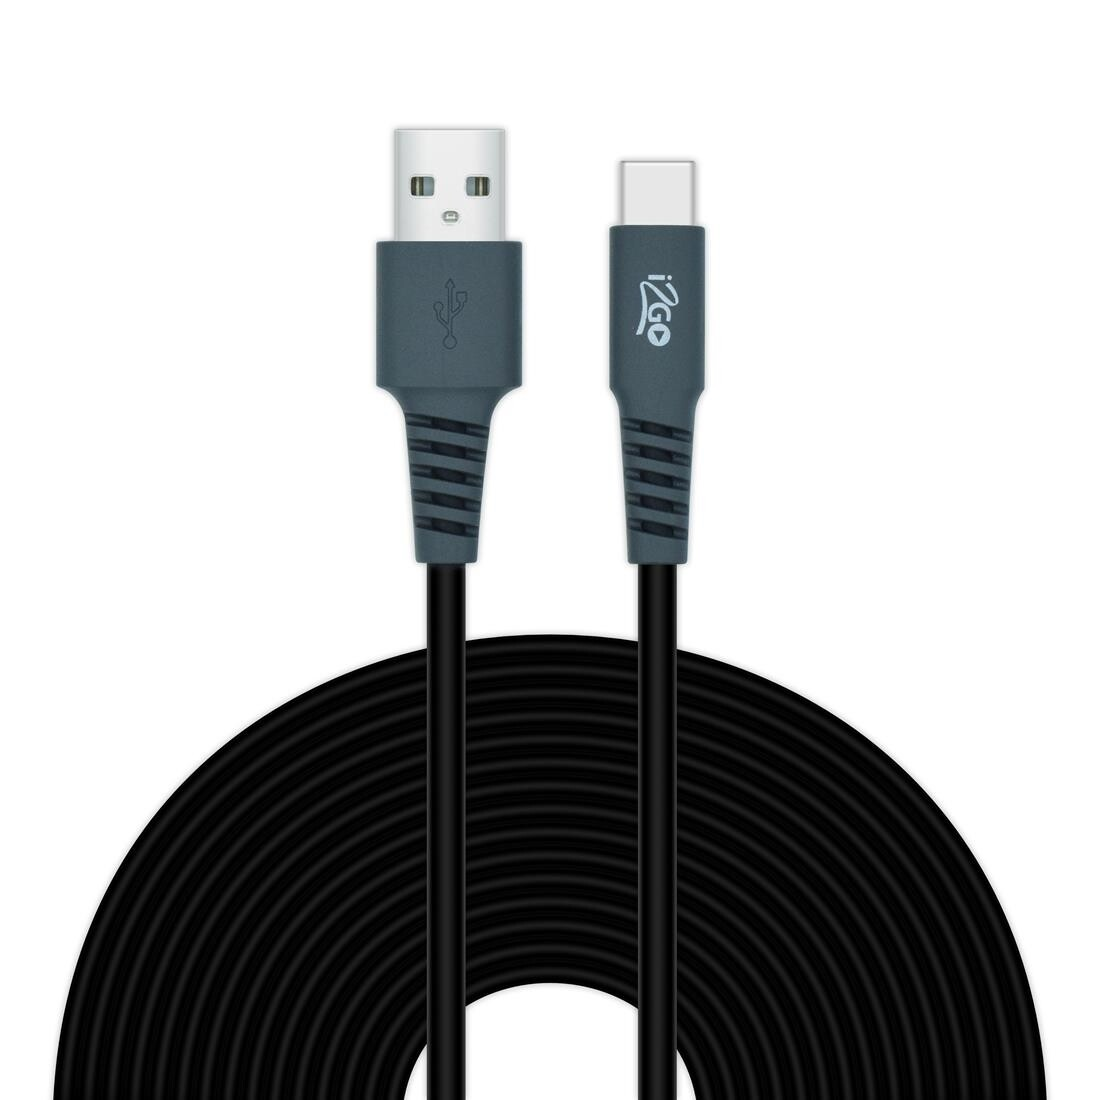 Cable Tipo C 3 Metros Cable Redondo PVC i2GO Negro